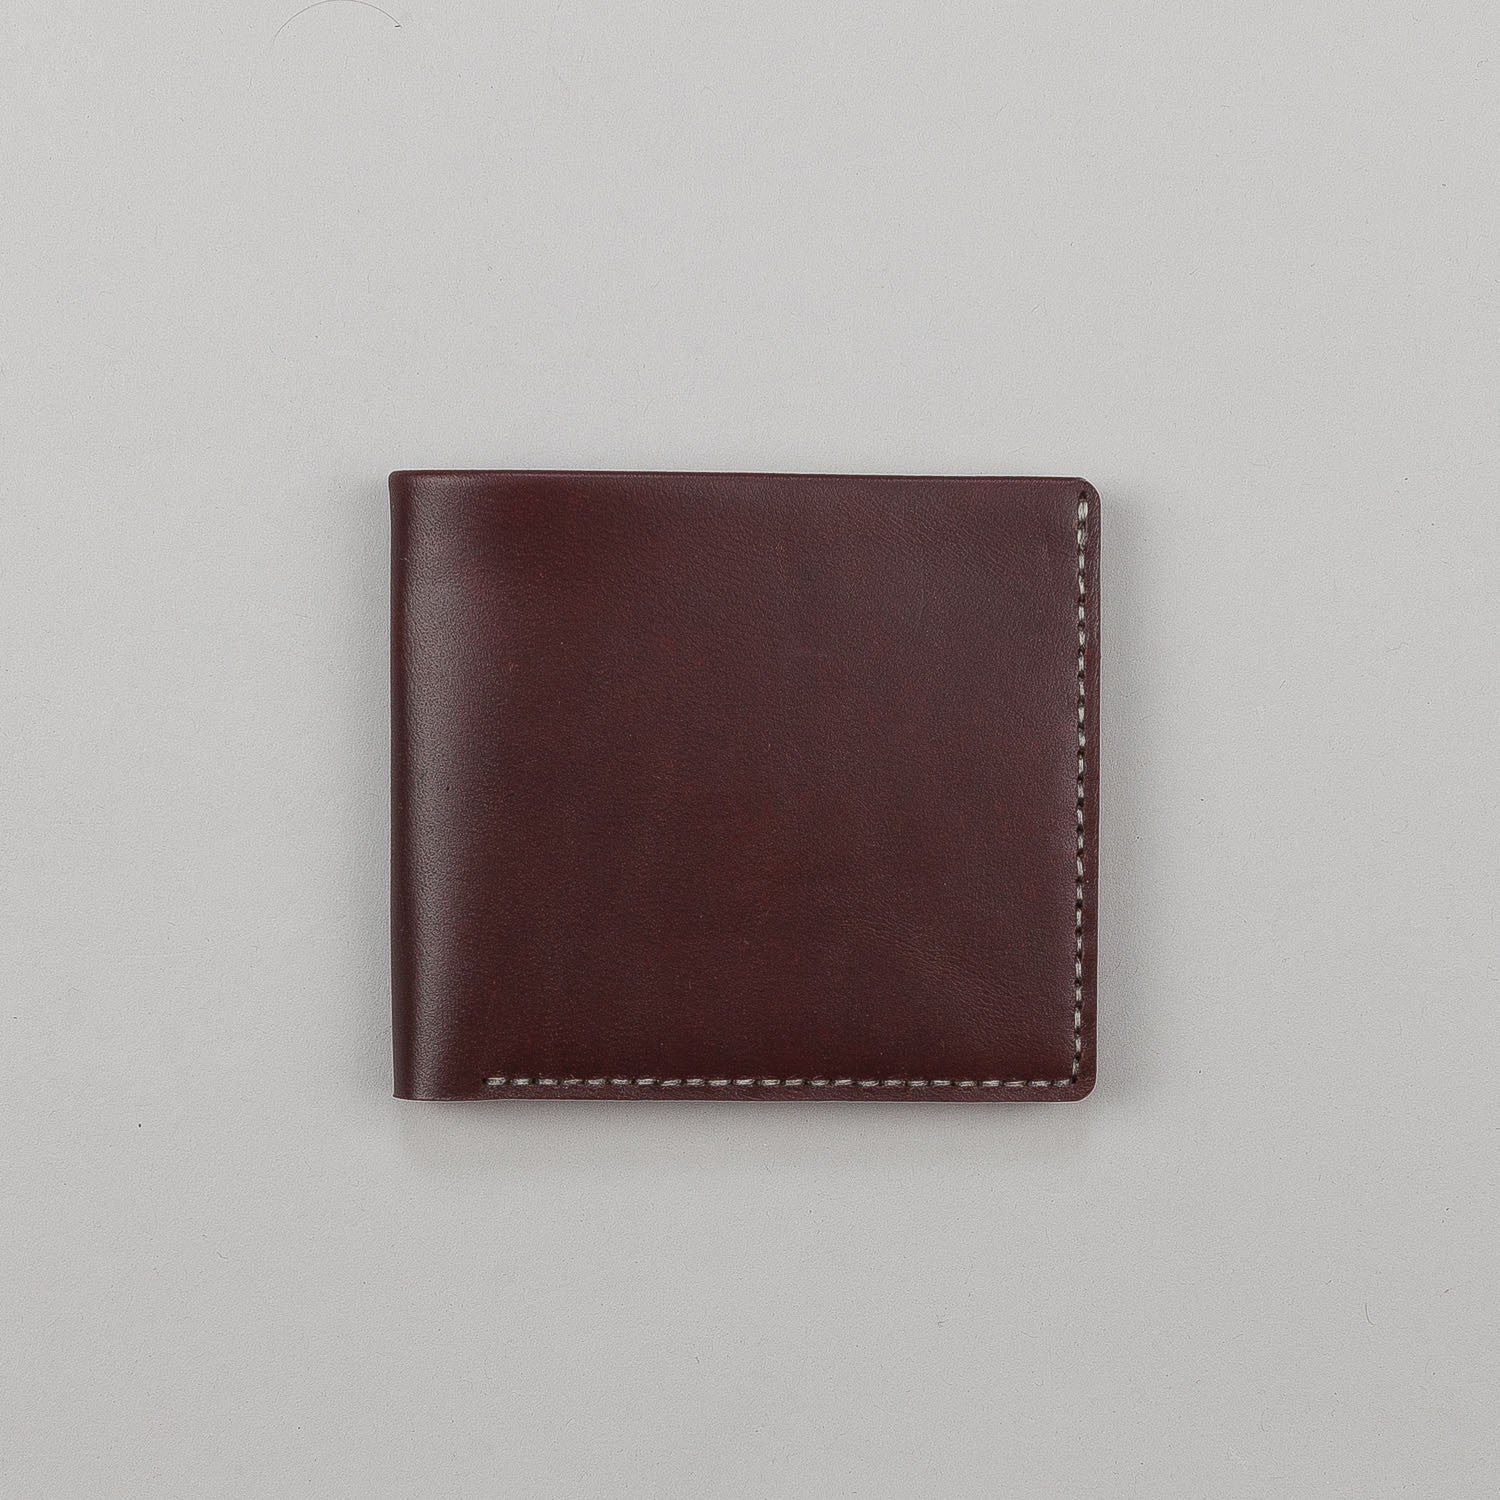 Makr Open Billfold Leather Wallet